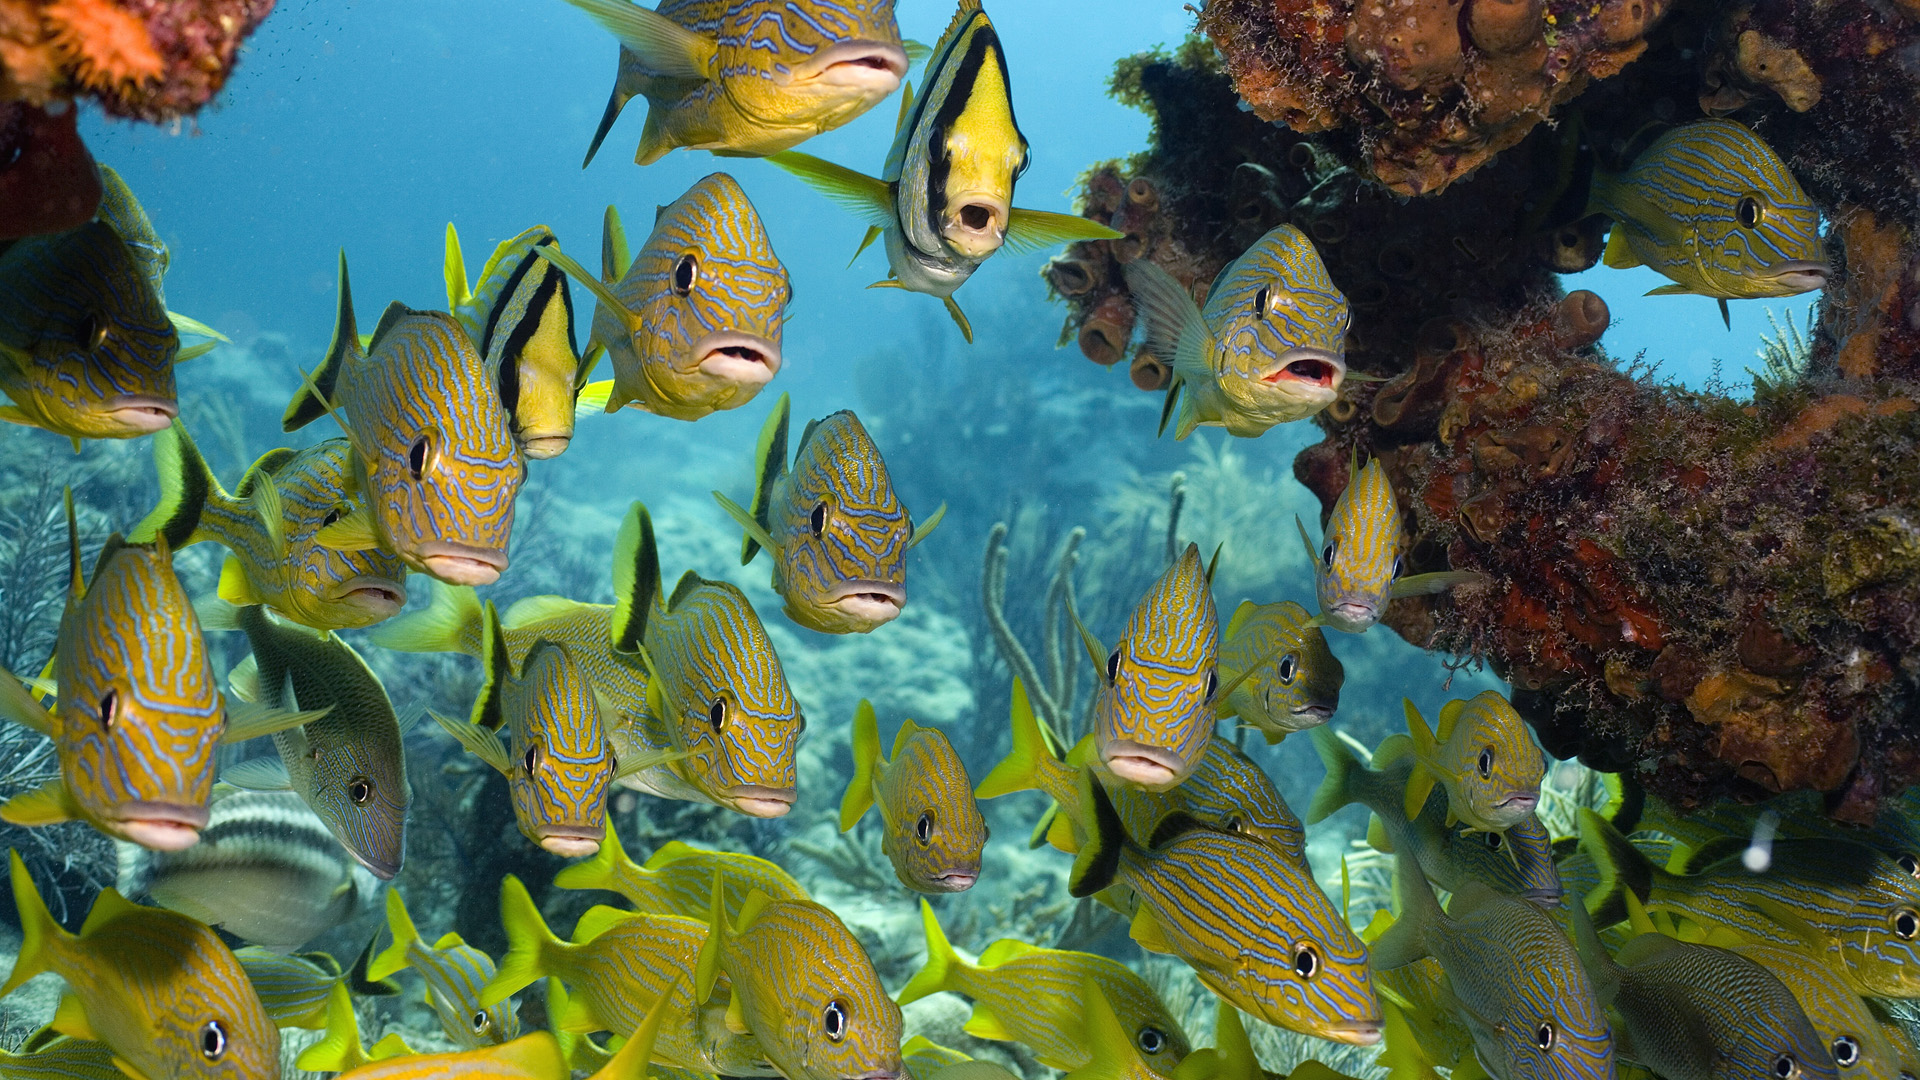 School Of Fish And Corals, Florida Keys National Marine